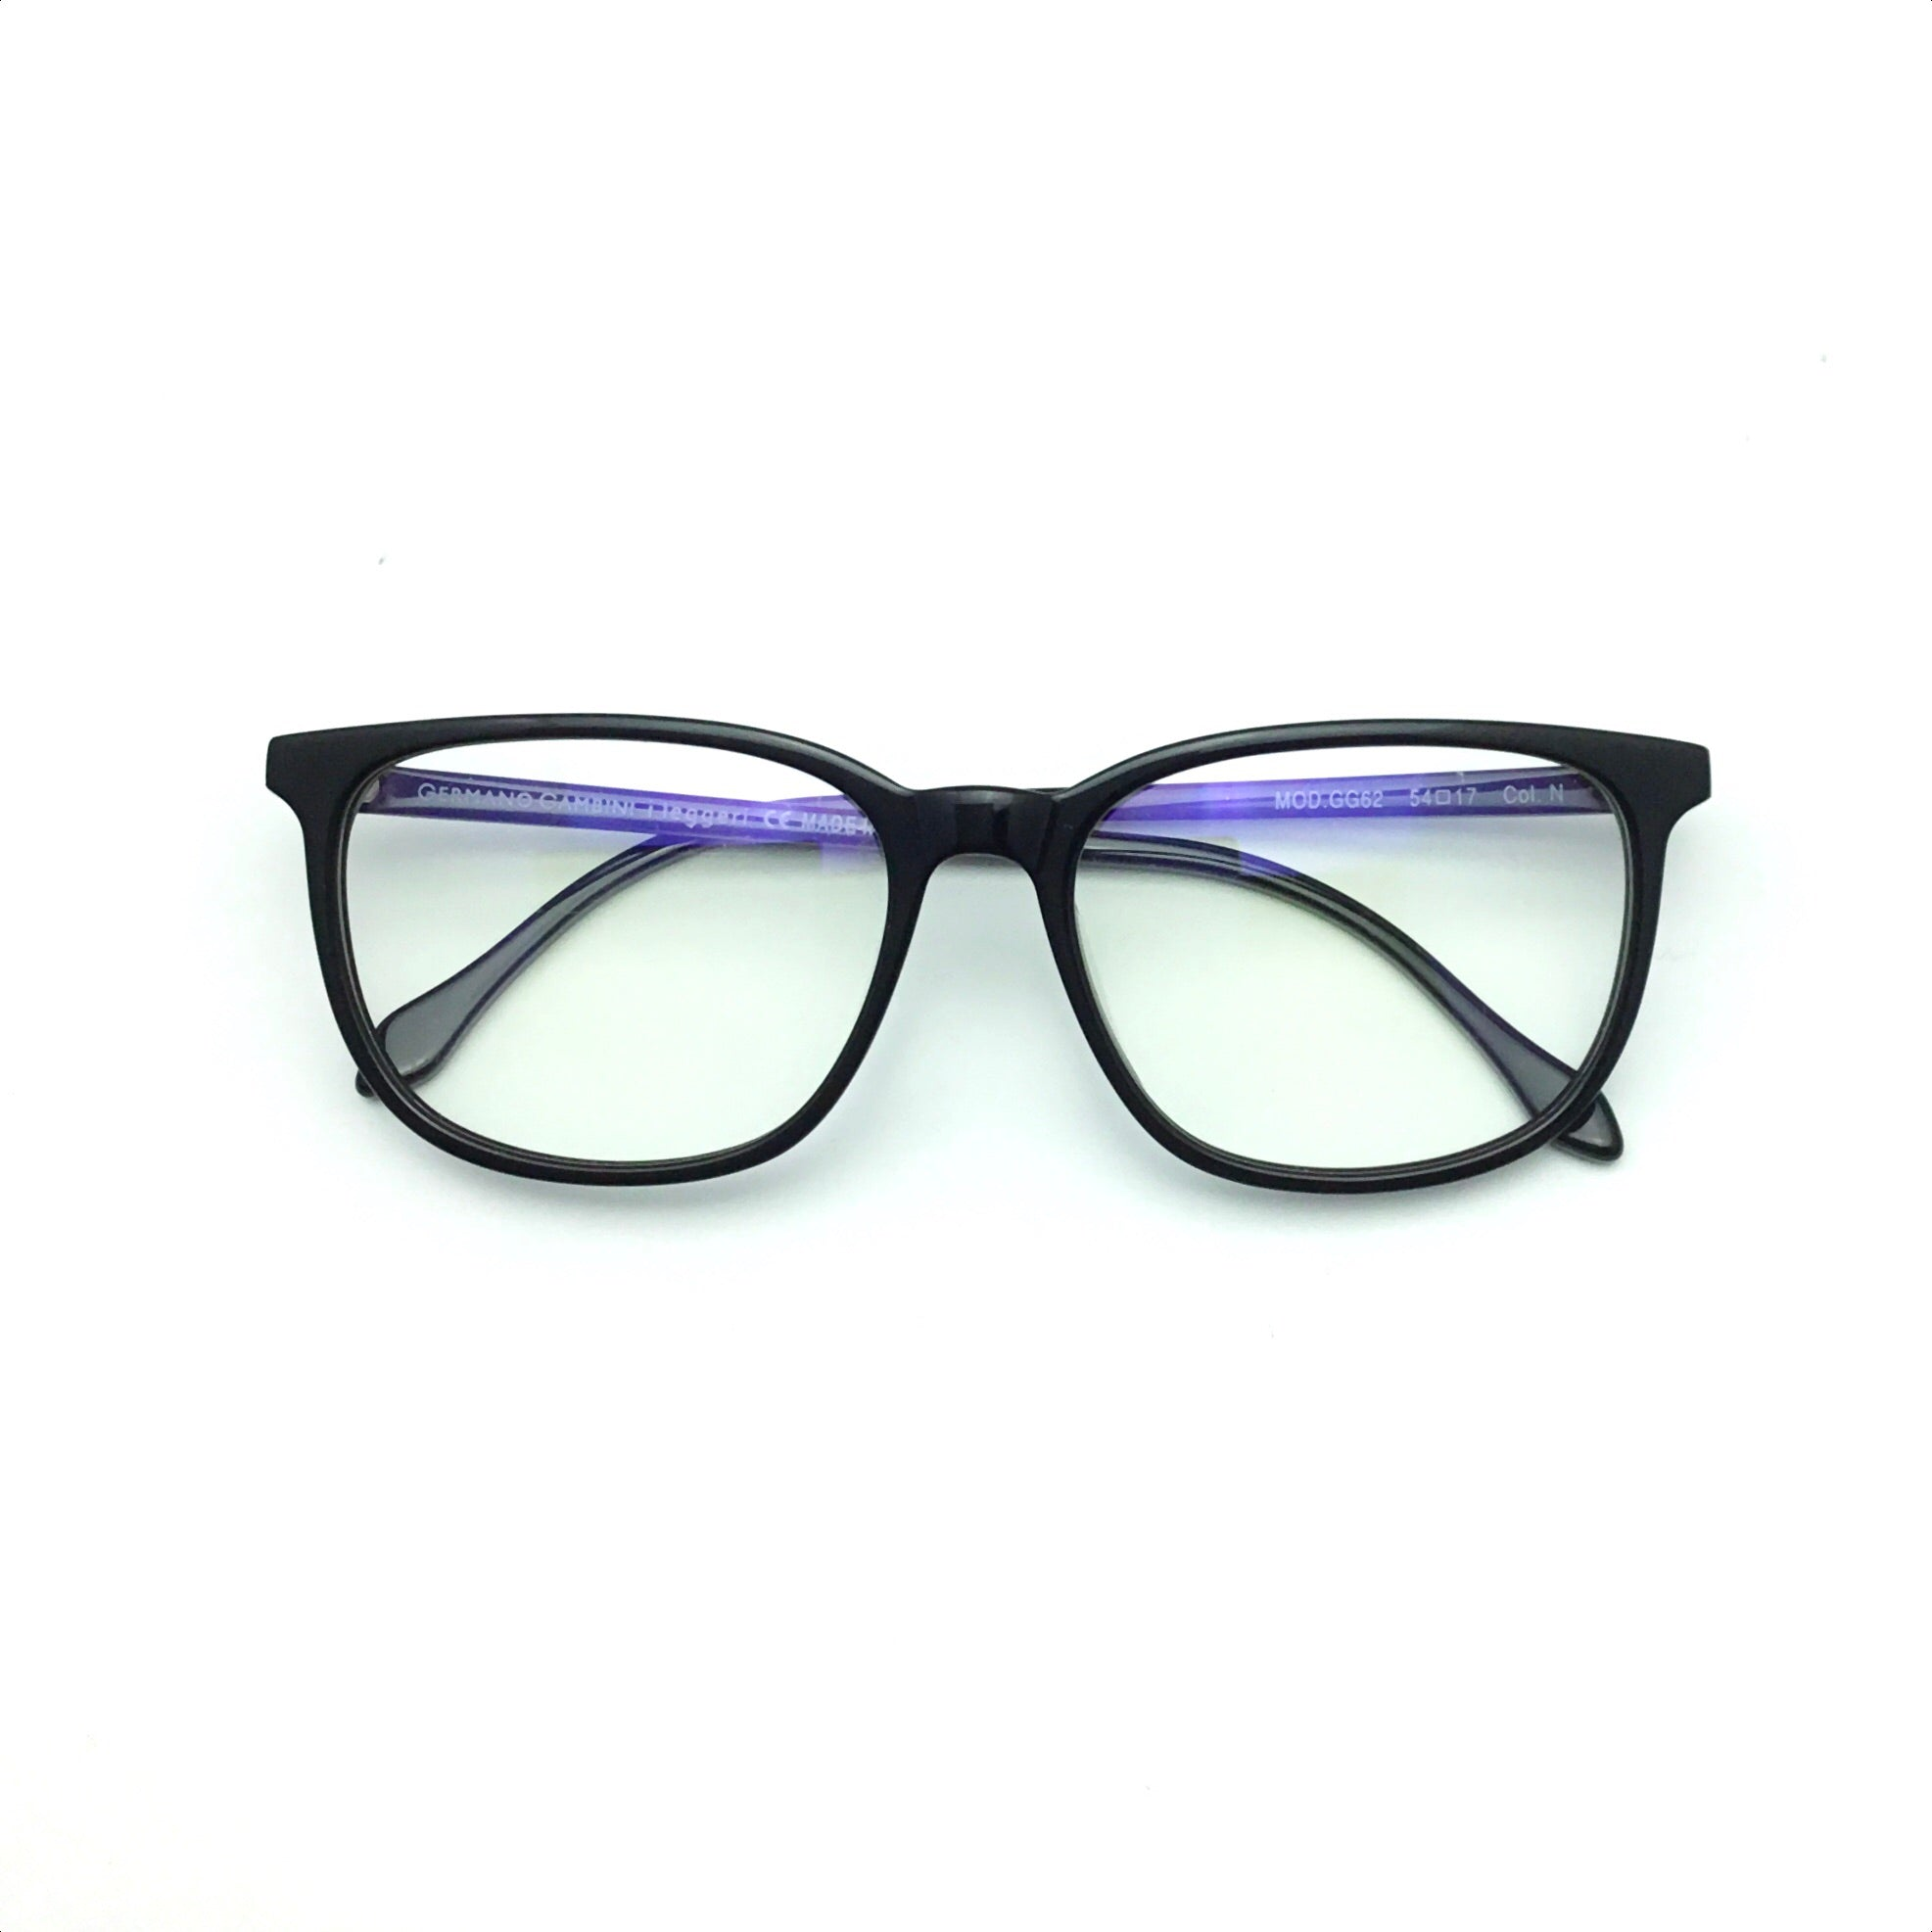 Germano Gambini Glasses $219 ITALY L6